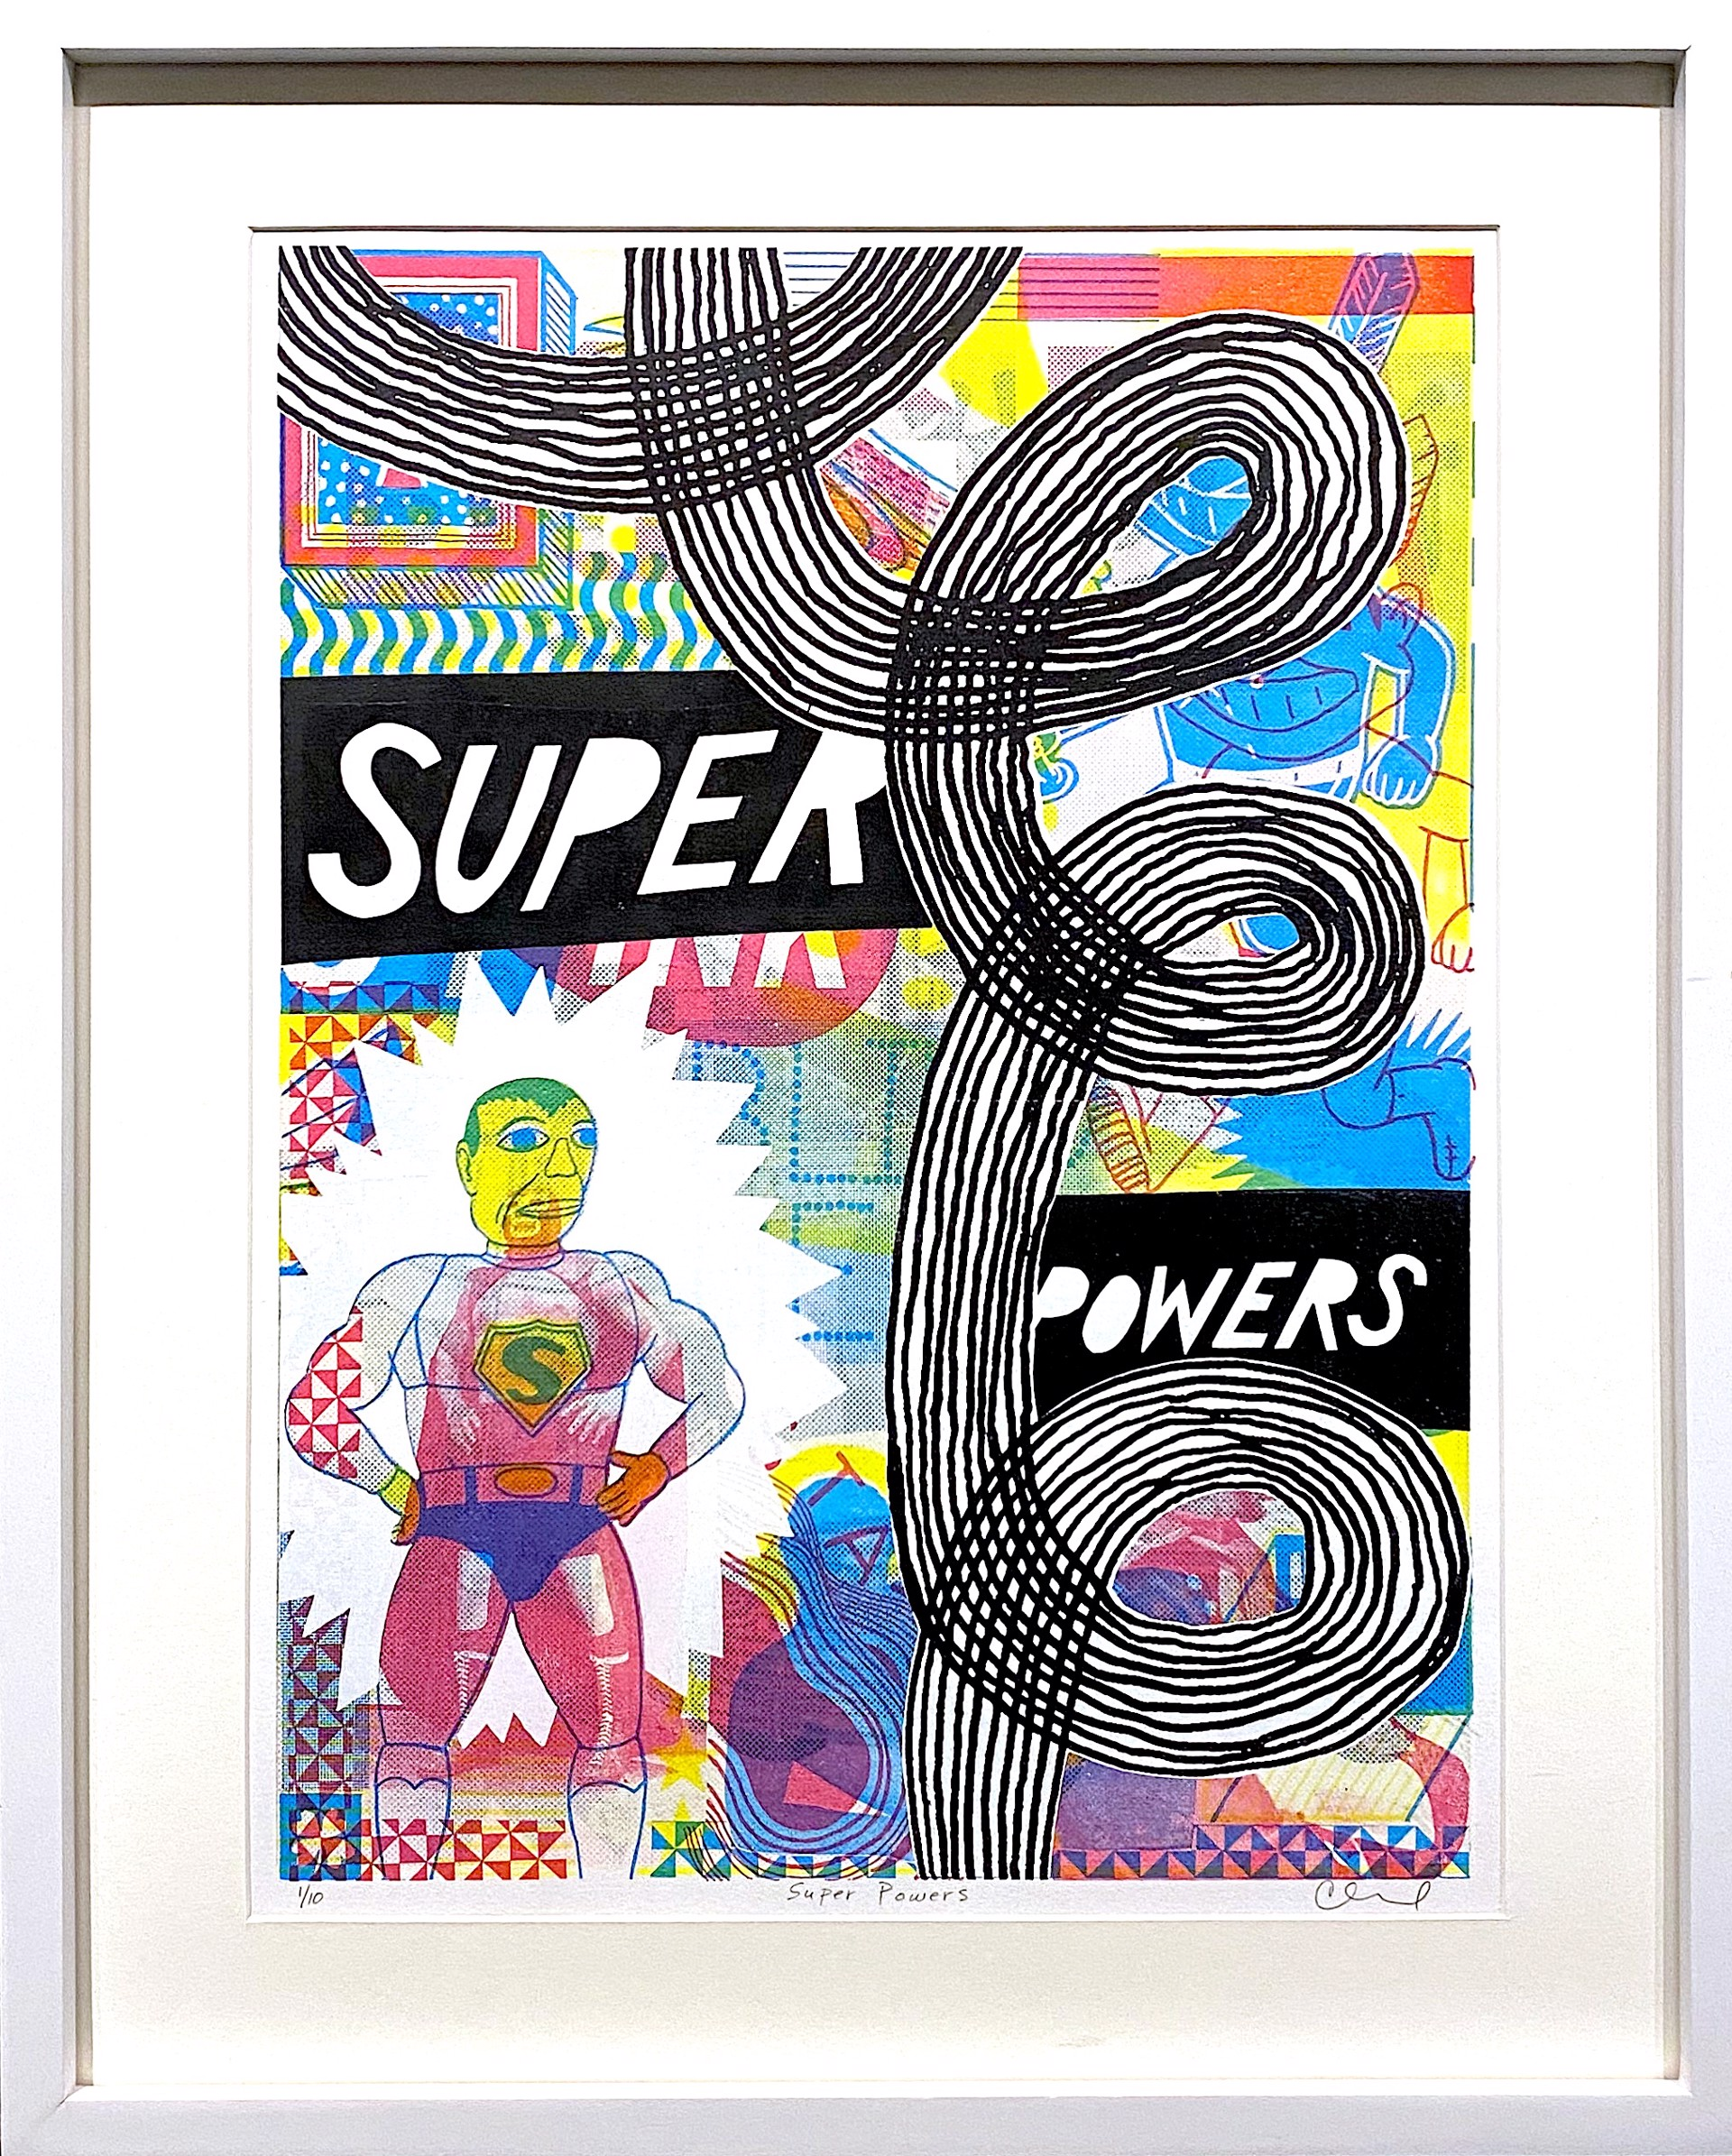 Super Powers by Chadwick Tolley